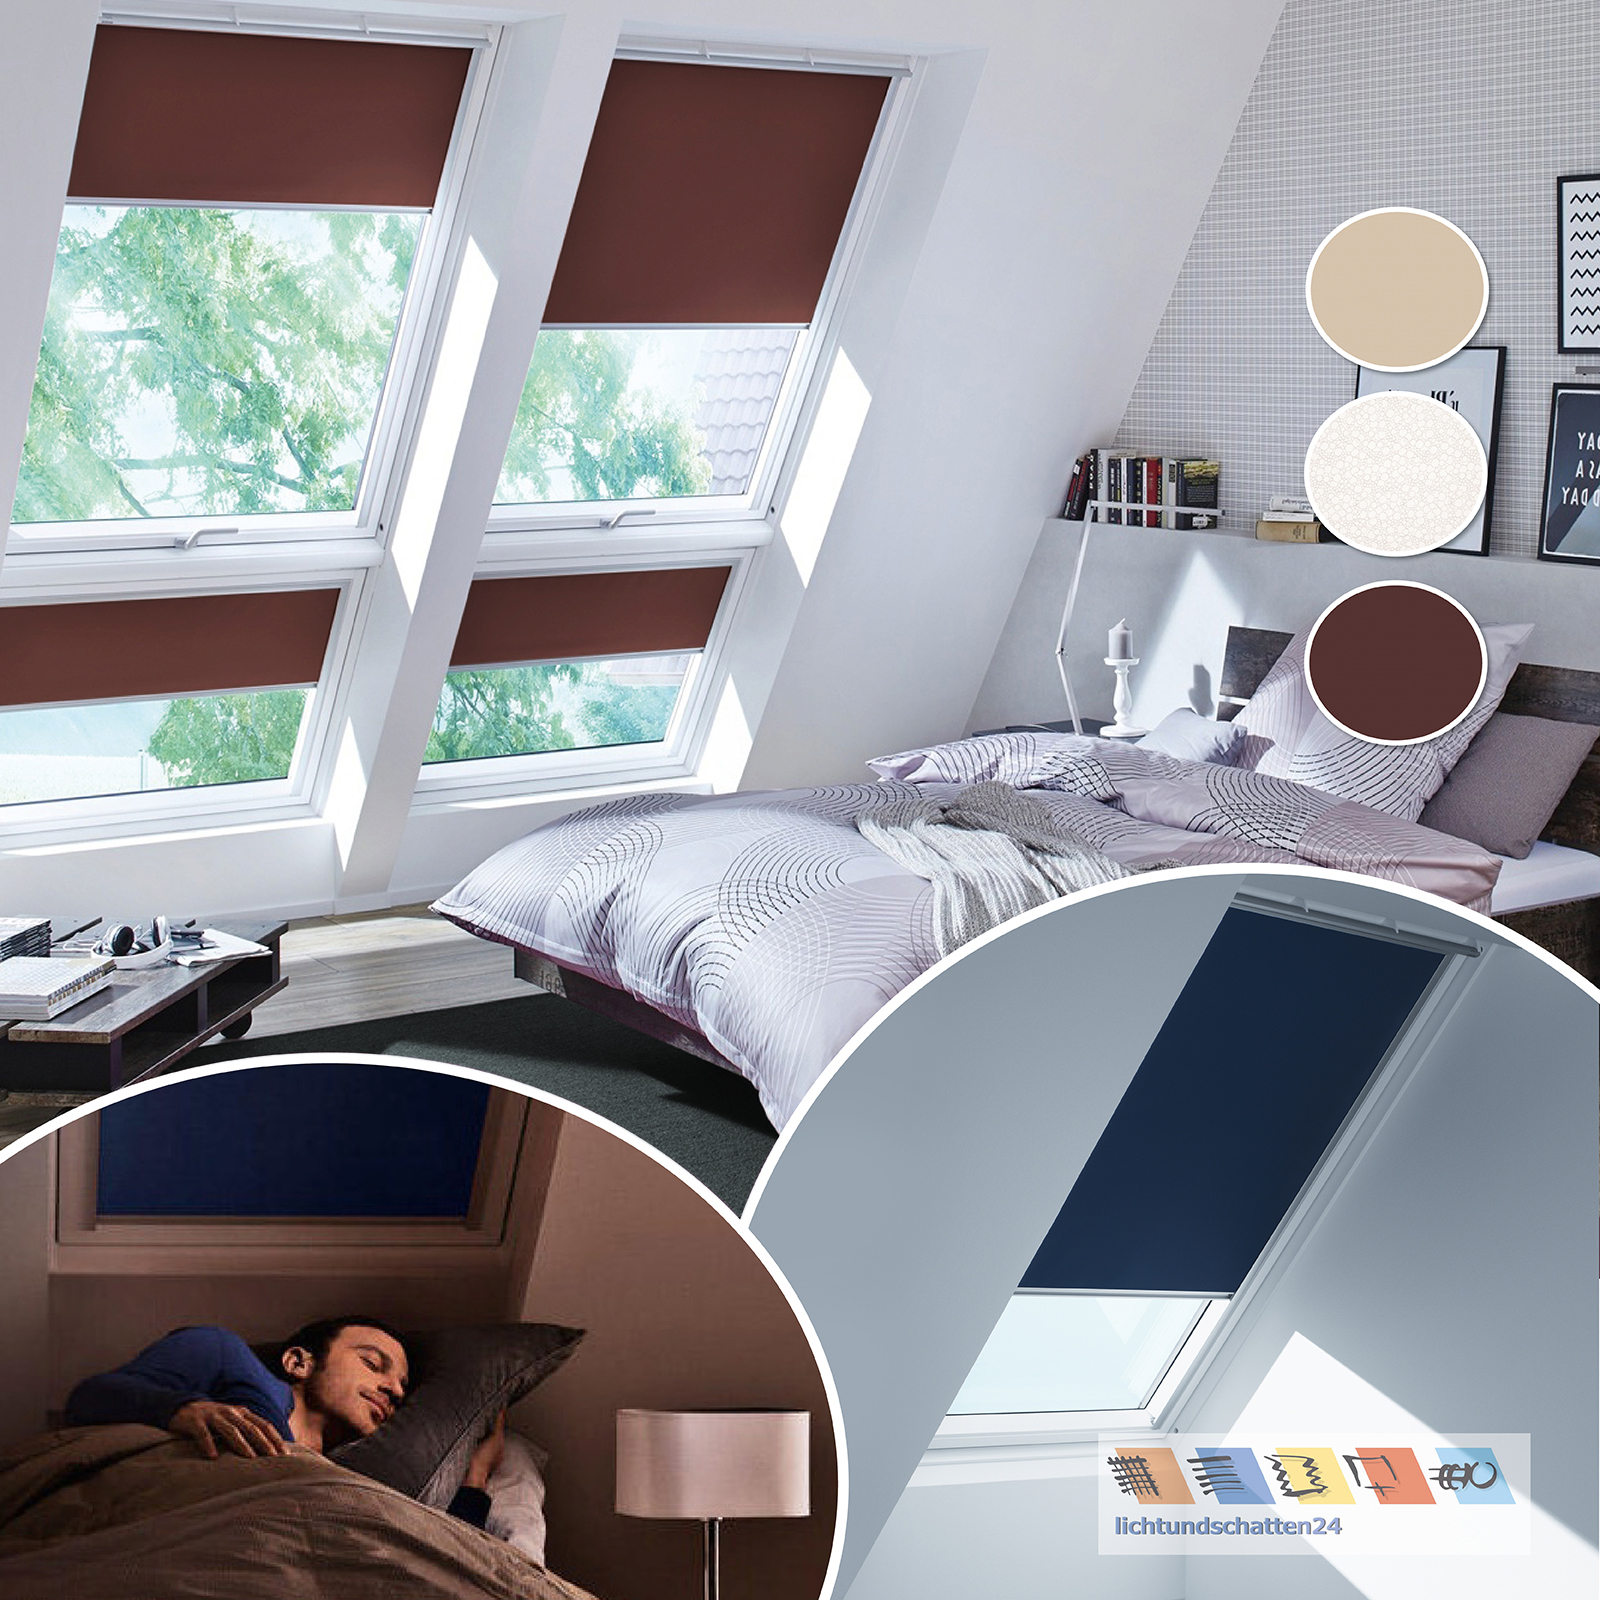 orig velux dachfenster rollo thermo verdunkelung ggu gpu ggl 4558 4559 4556 ebay. Black Bedroom Furniture Sets. Home Design Ideas